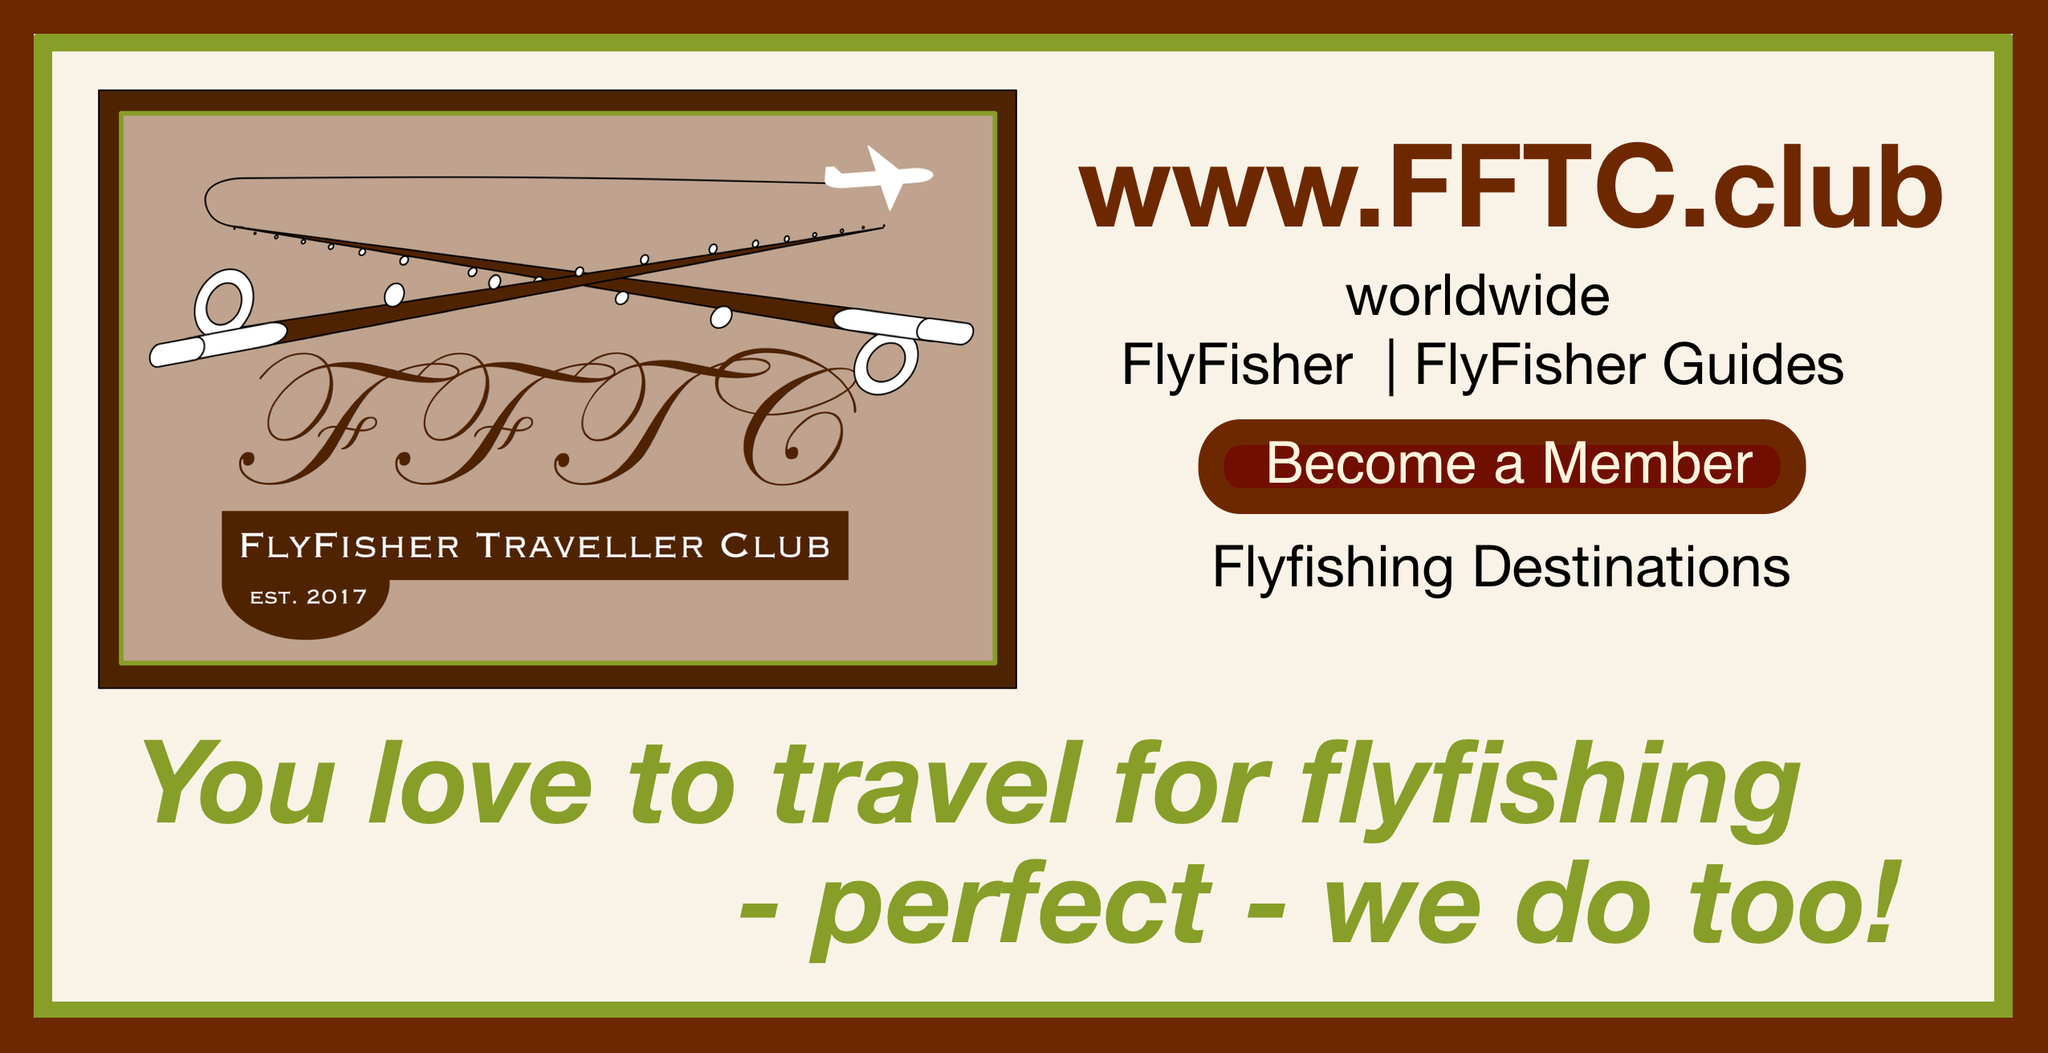 FFTC.club - Fly Fisher Membership - Frontside Flyer 2017!